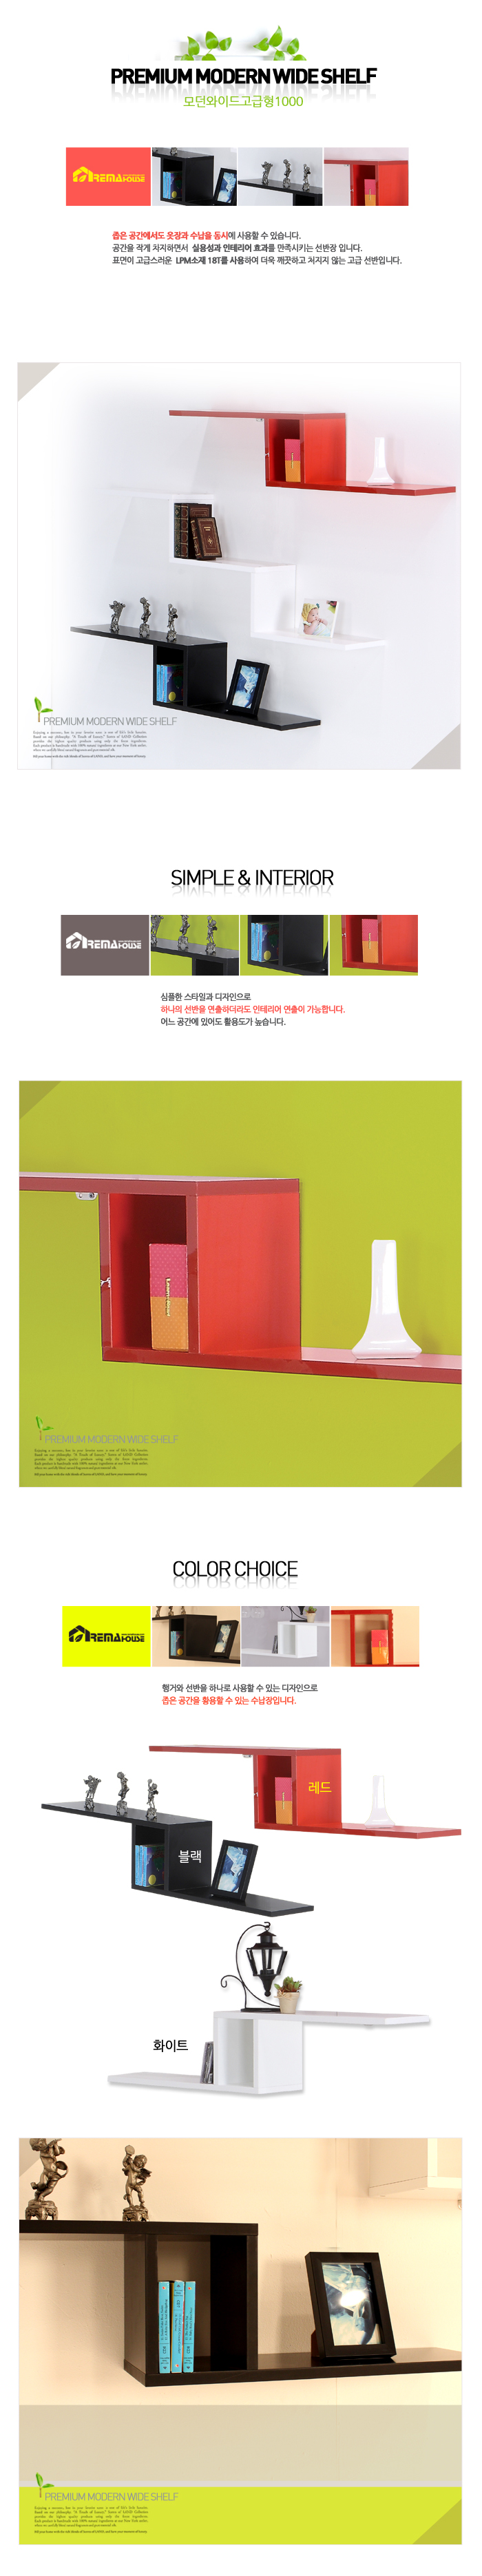 Premium Modern Wide Shelf